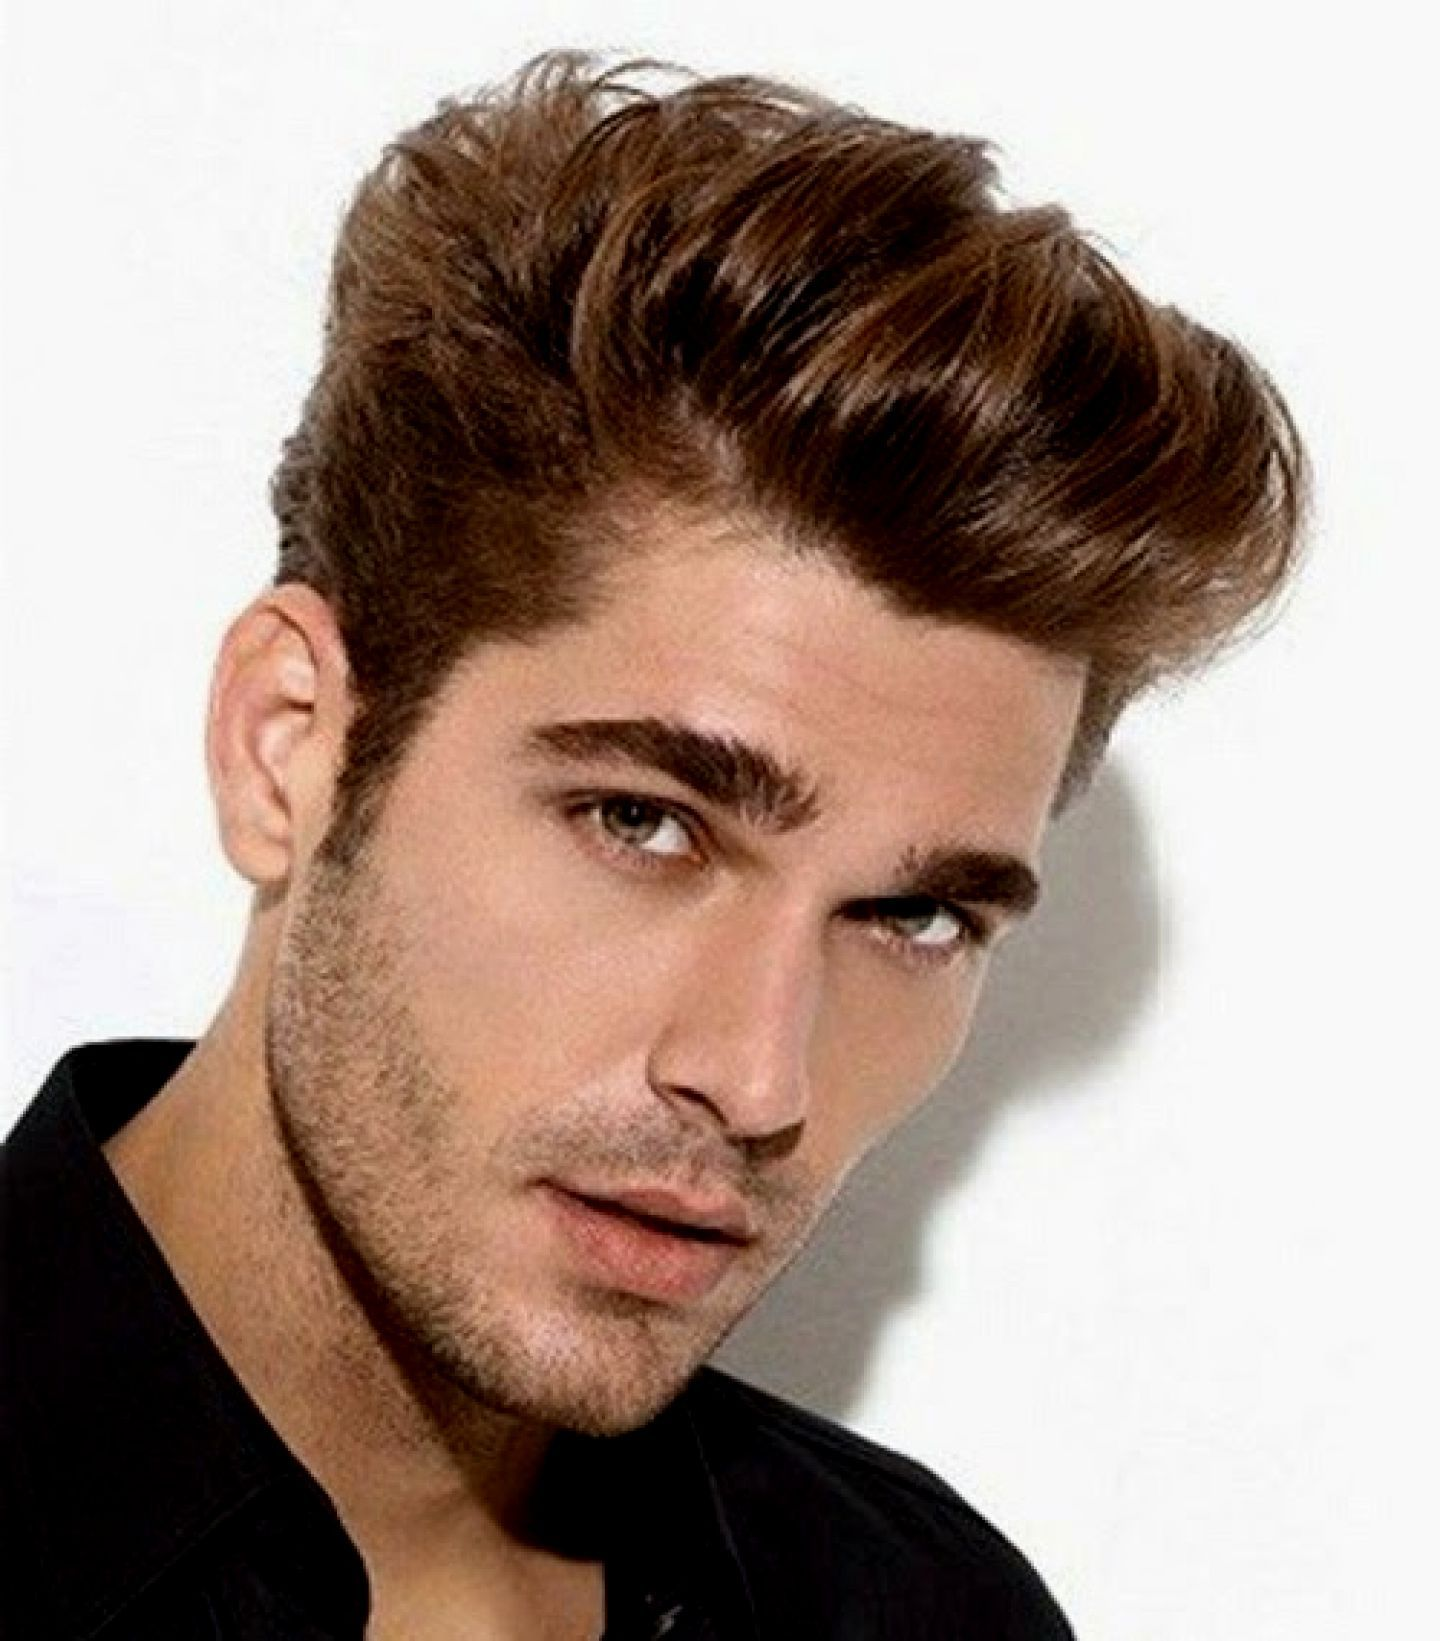 New Hairstyle For Boy Look New Hairstyles 2016 Hairstyle Pop Hairstyles Inspiring Mens Hairstyles Medium Long Hair Styles Men Medium Length Hair Men